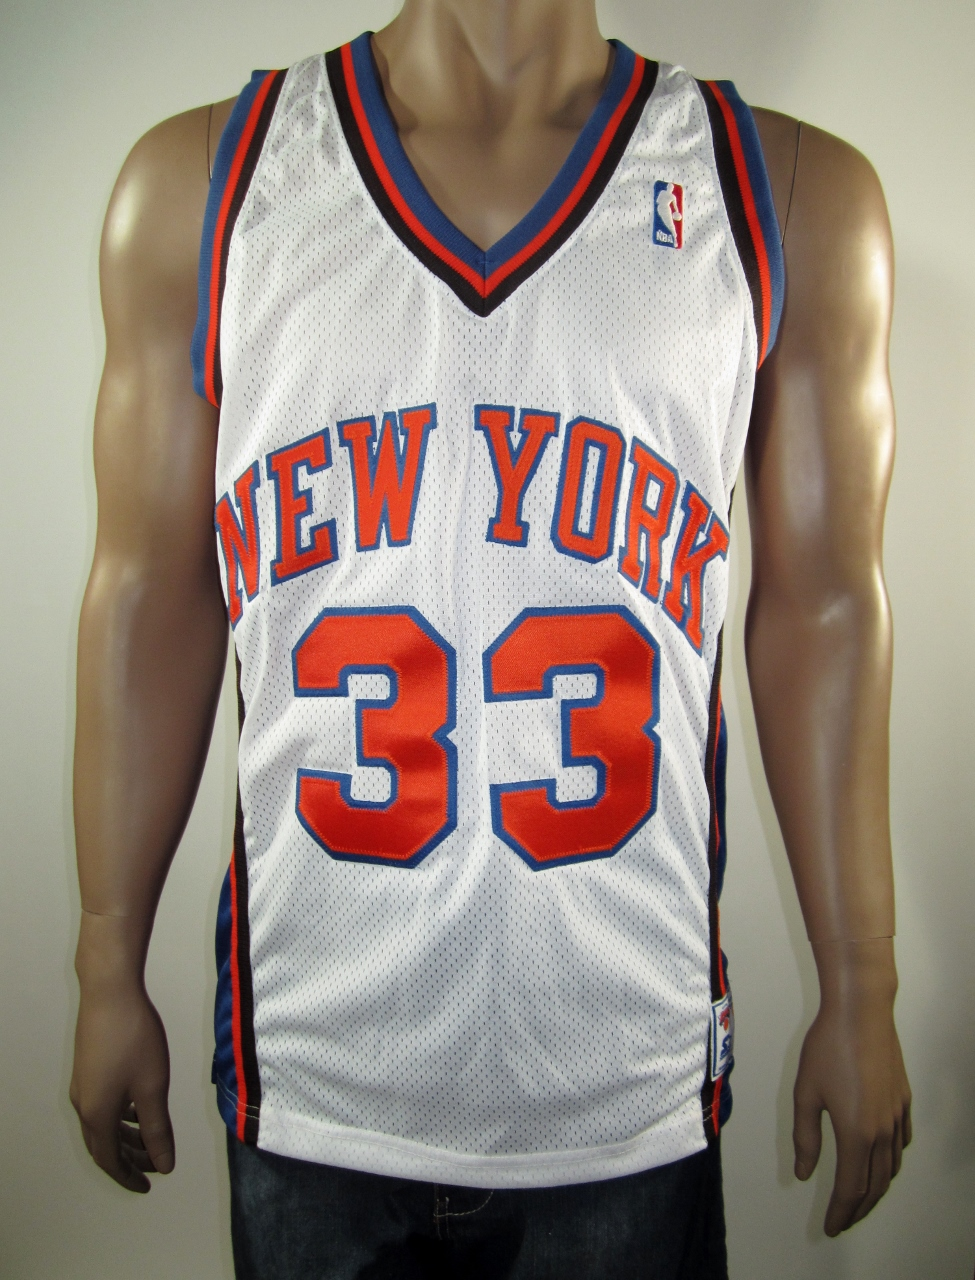 best service 7cfa5 d5c00 Patrick Ewing New York Knicks Authentic Starter Jersey 46 NWT from DFRNSH8